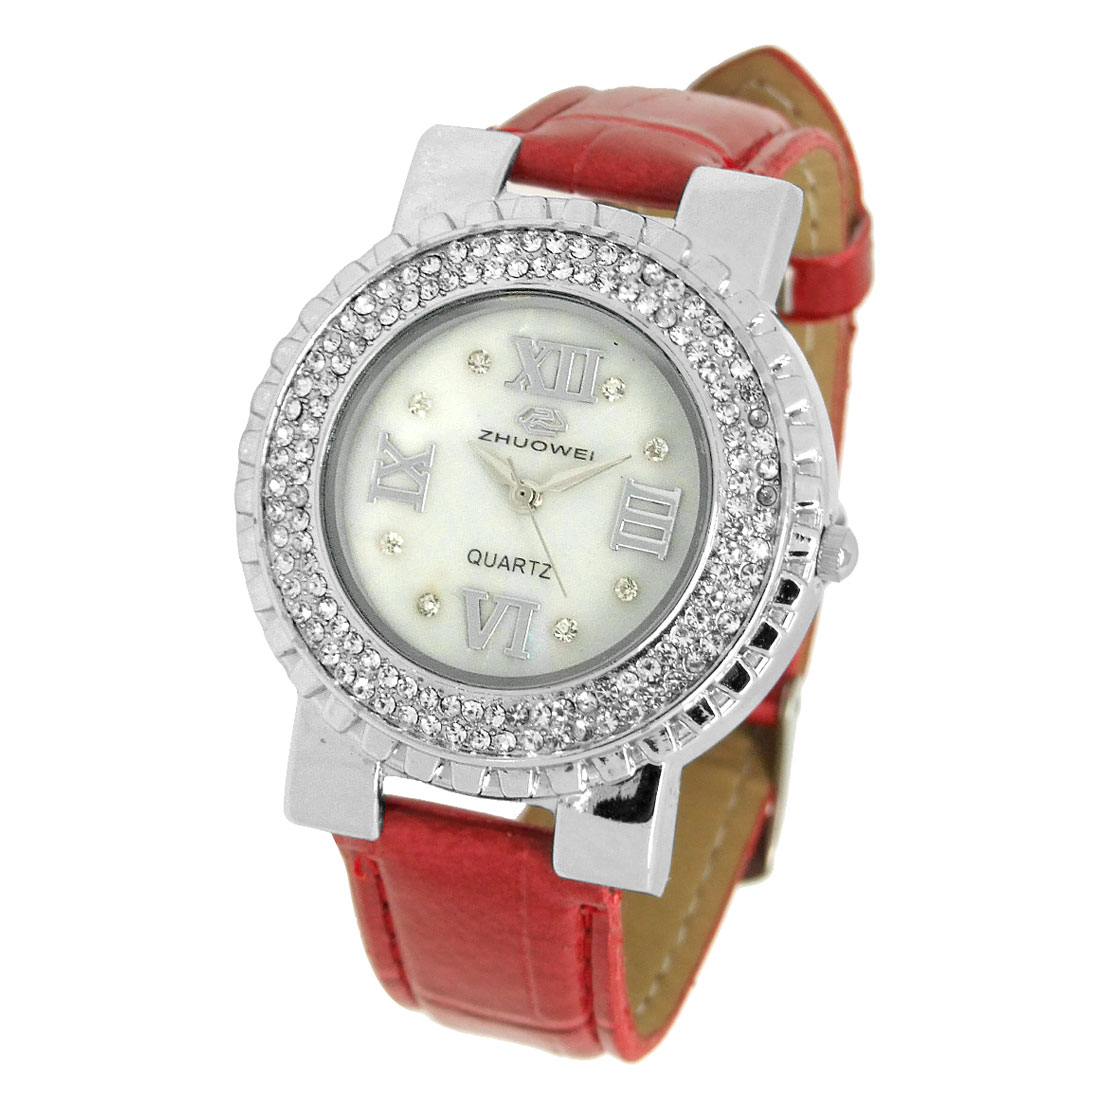 Round Face Ladies Crystal Wrist Watch Red Leather Strap